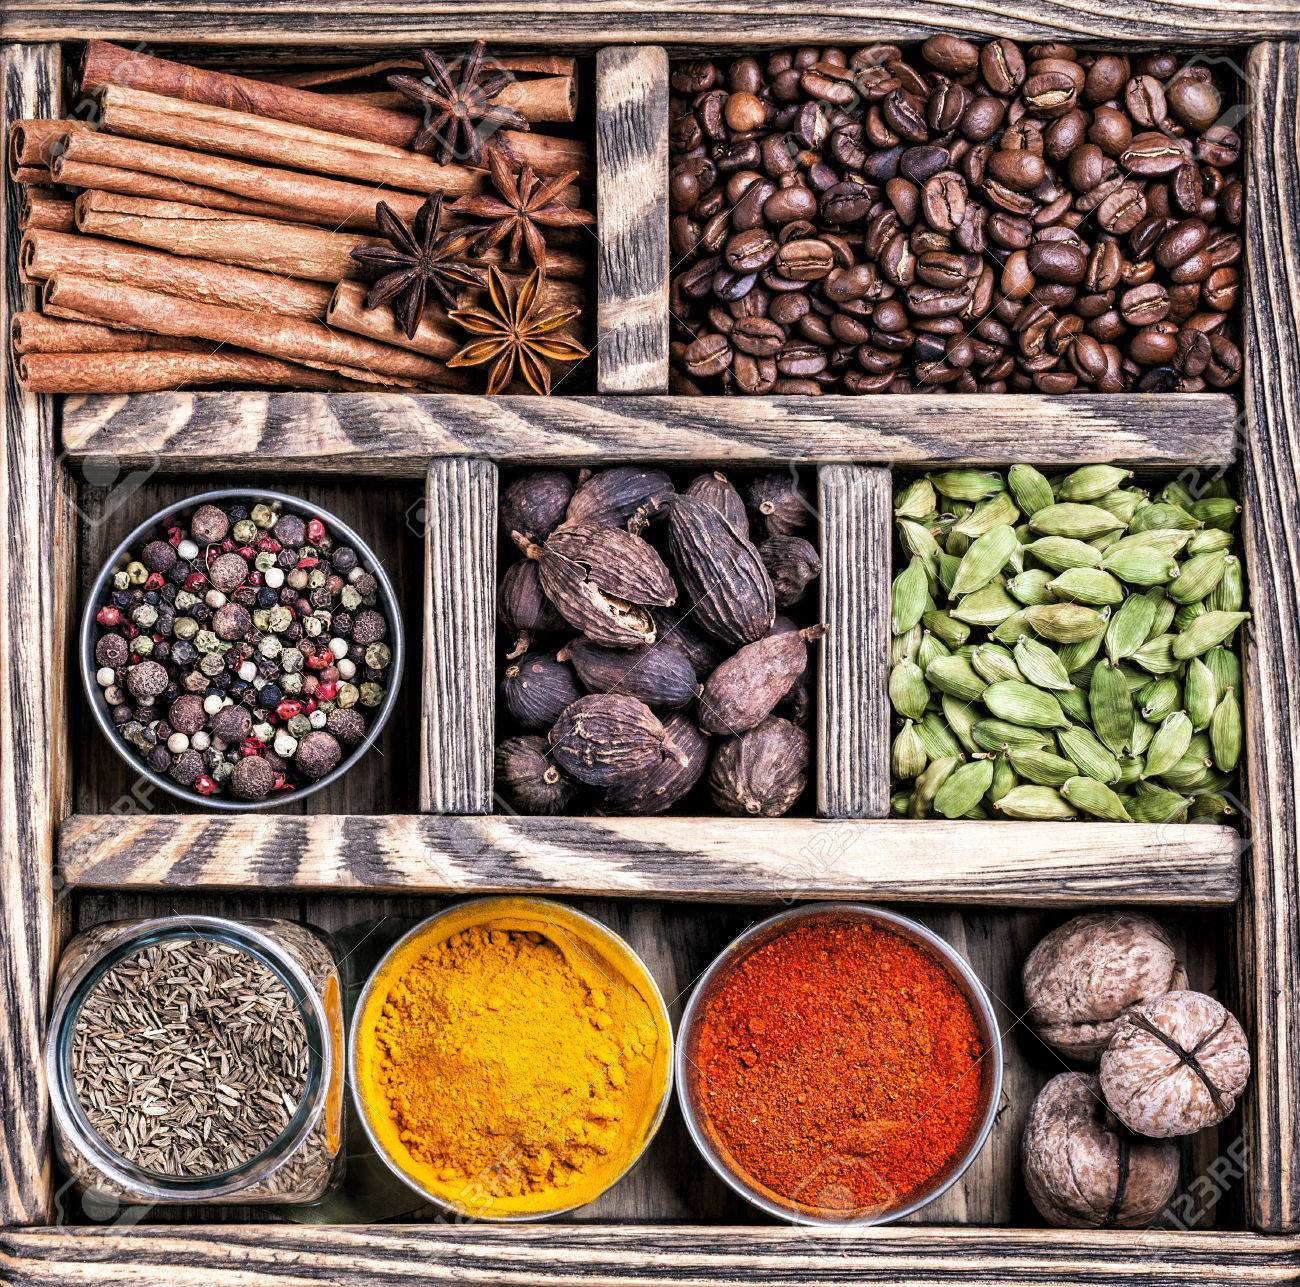 Spices, coffee and walnuts in the wooden box Stock Photo - 46149694